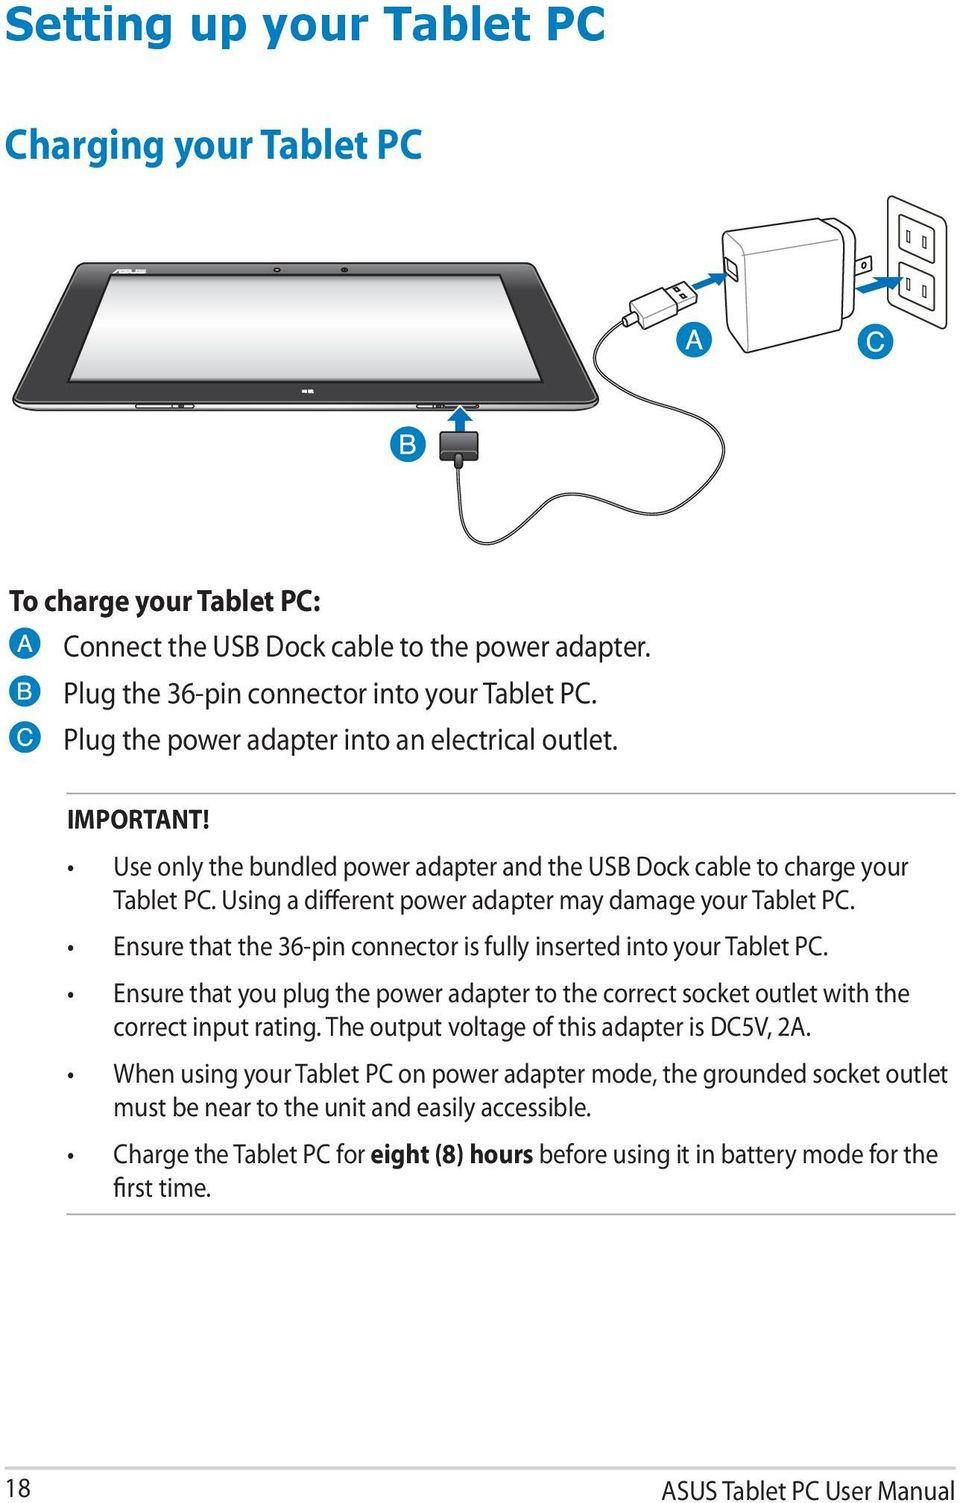 Tablet Pc User Manual Tf600t Pdf Asus Usb Cable Wiring Diagram 18 Using A Different Power Adapter May Damage Your Ensure That The 36